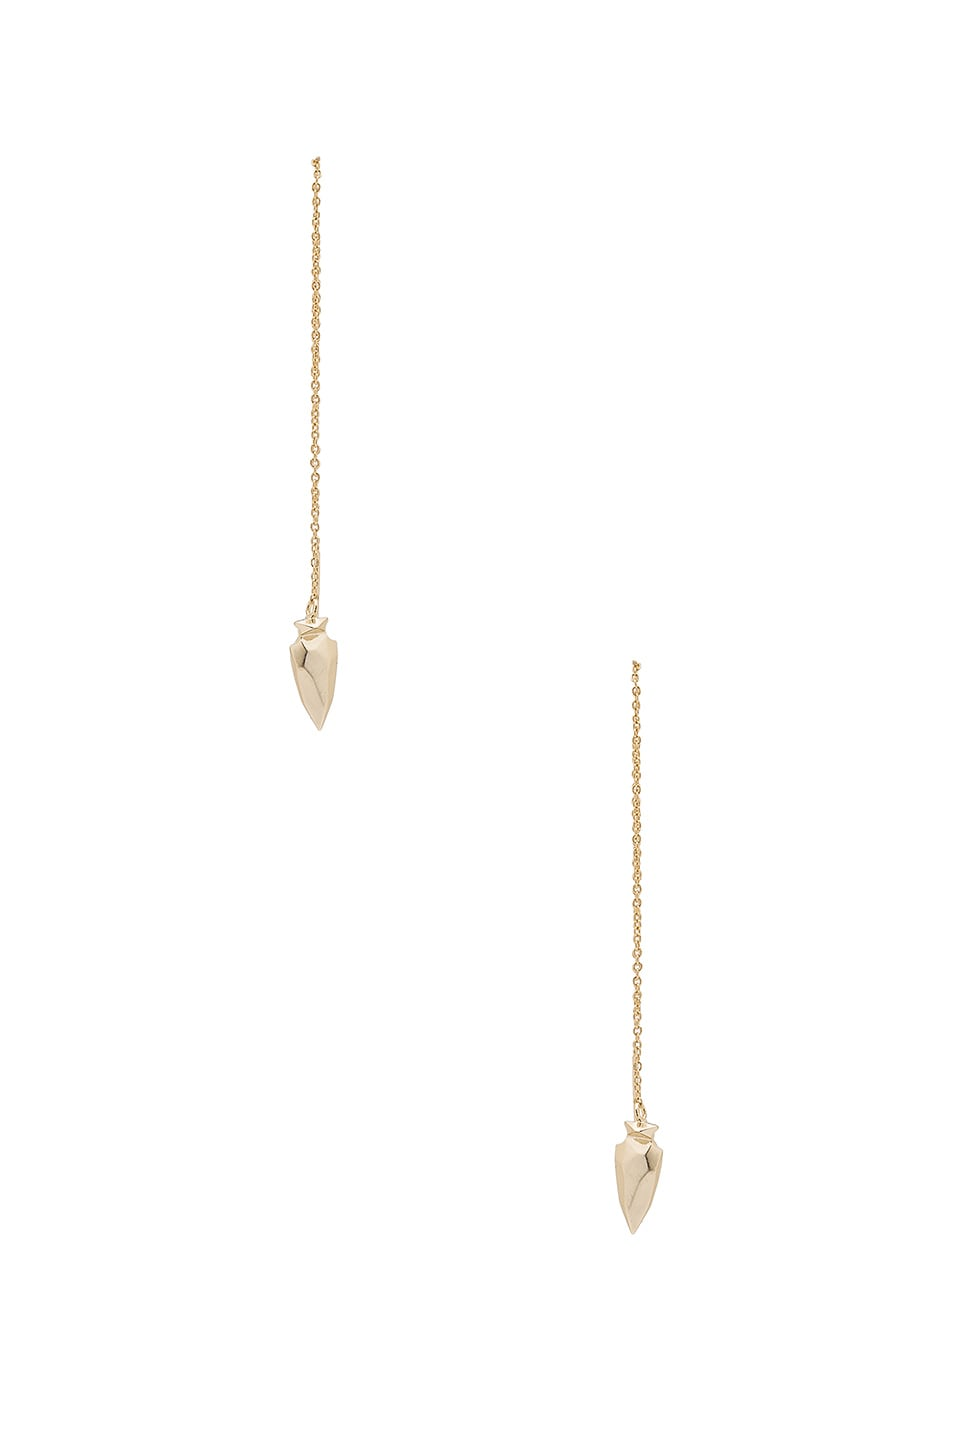 Kendra Scott Kimmel Ear Threader in Gold